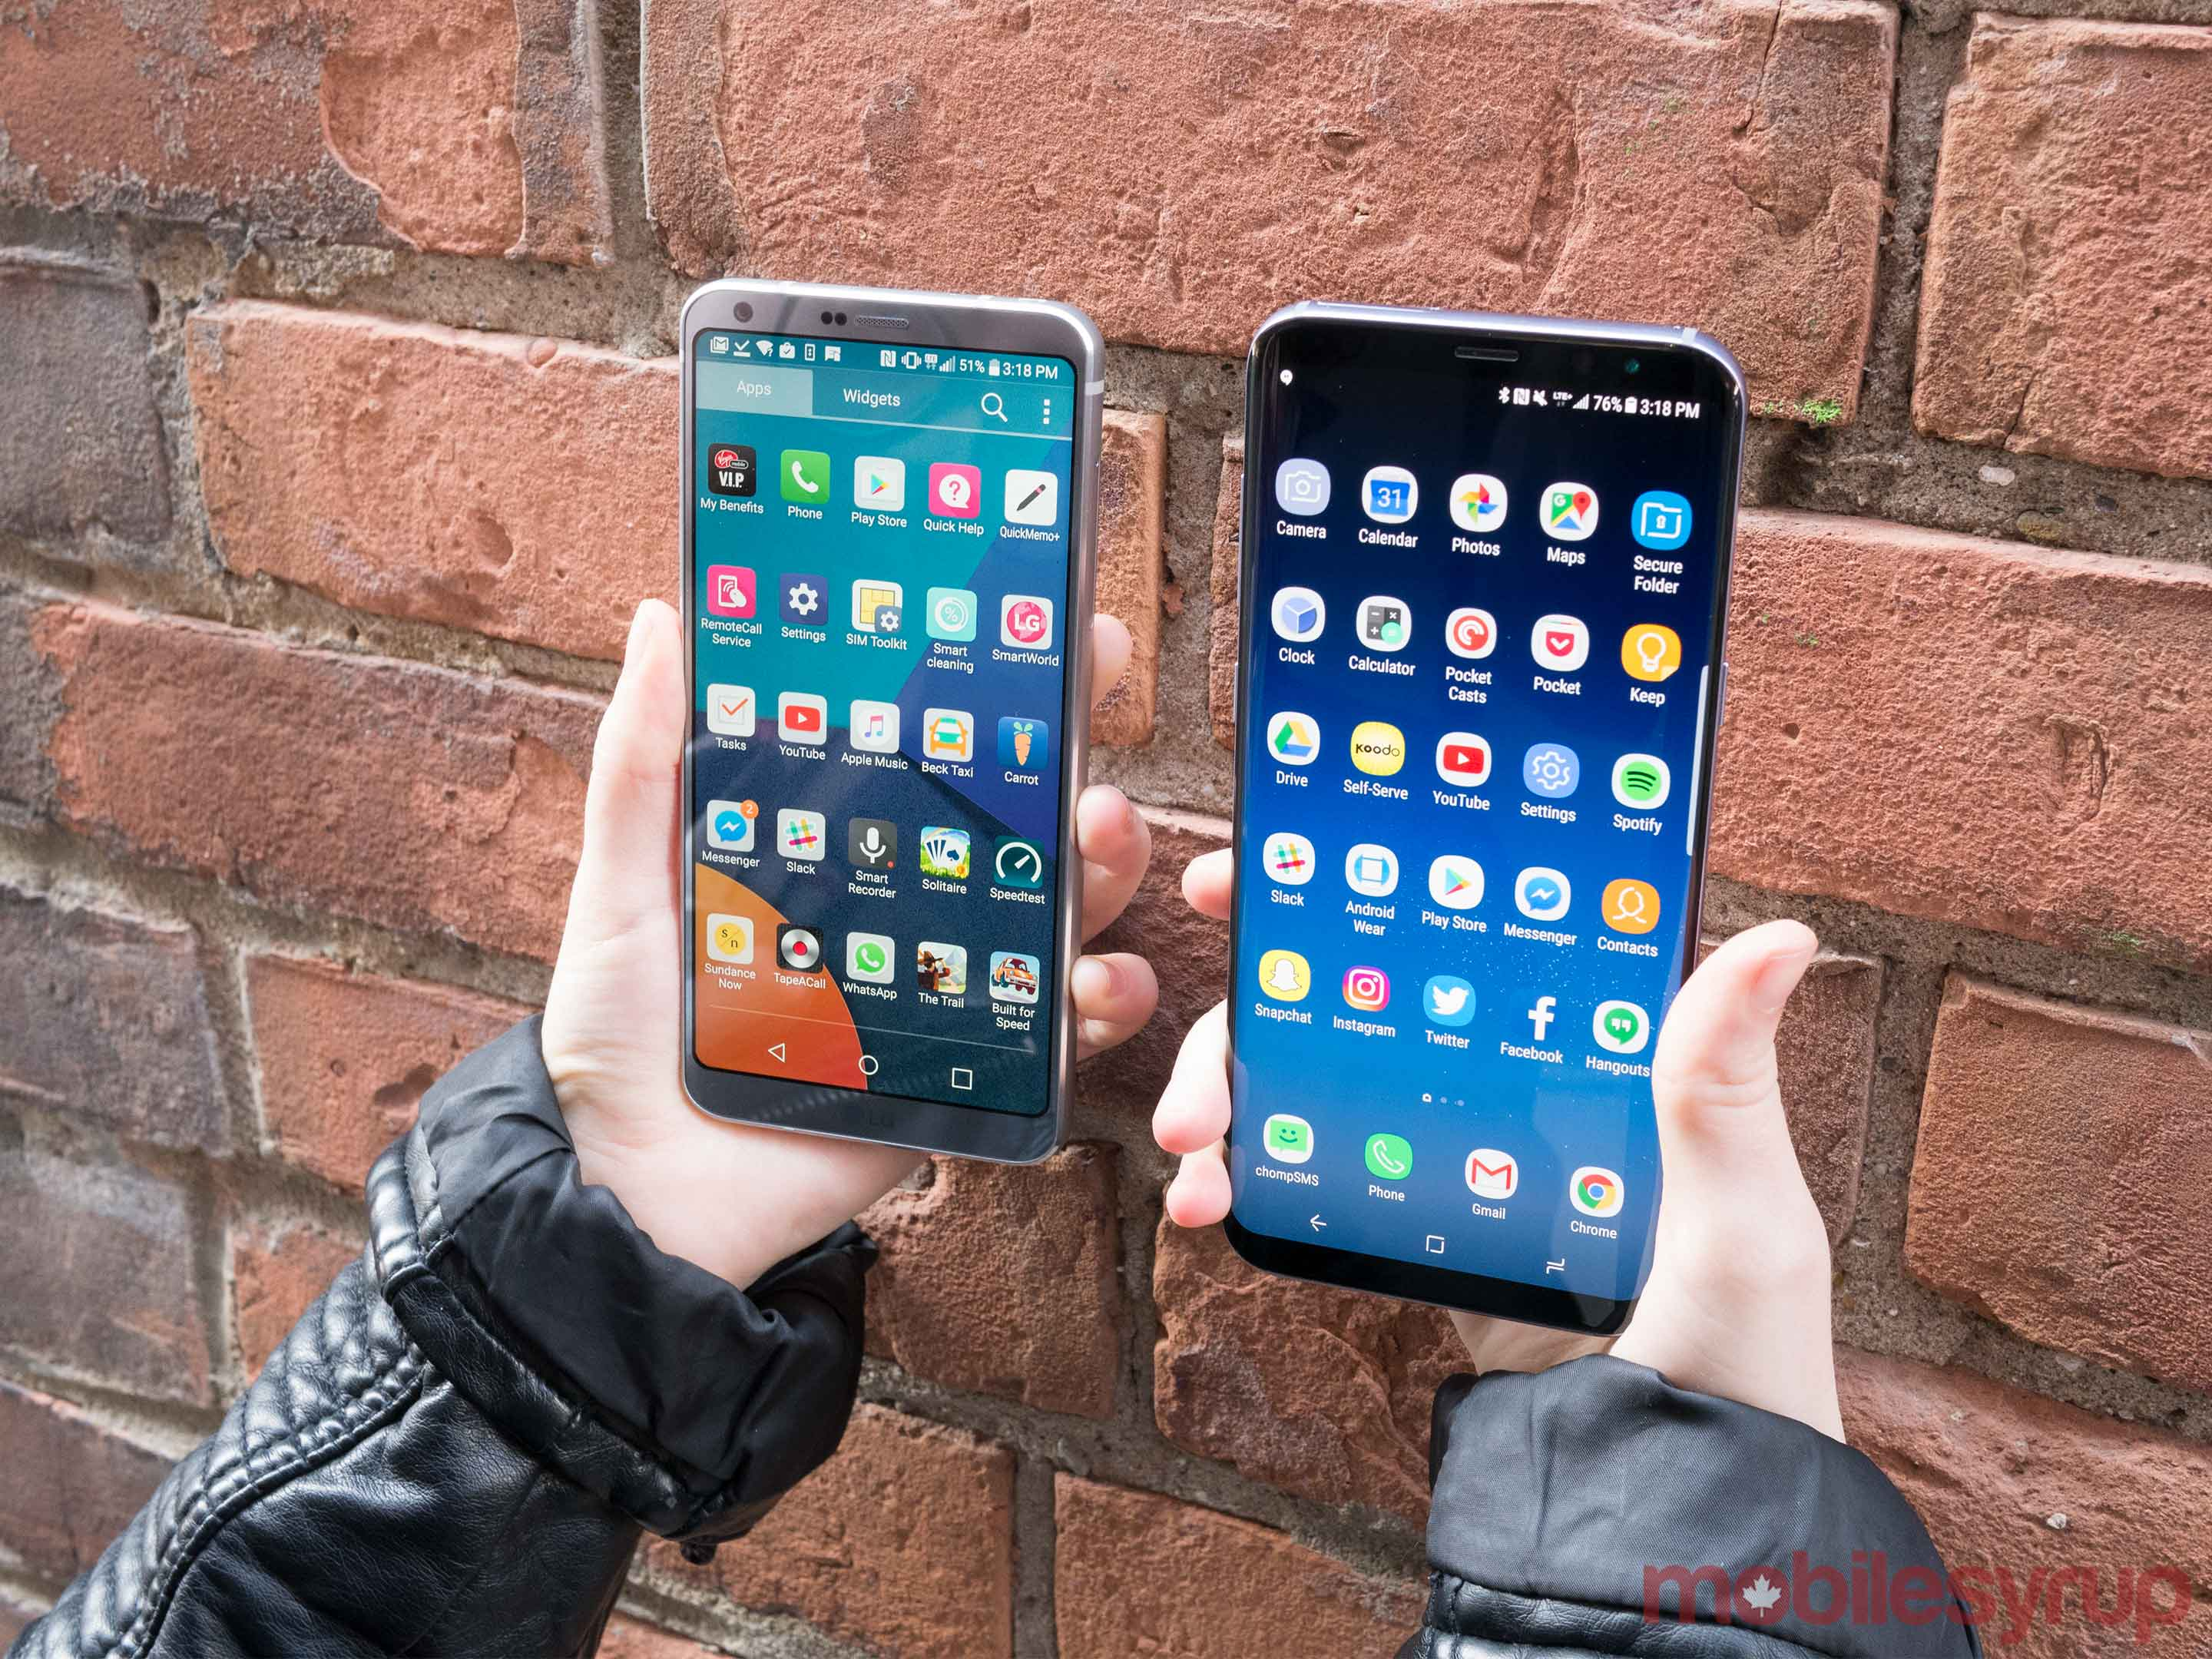 Galaxy S8 and LG G6 against a brick wall